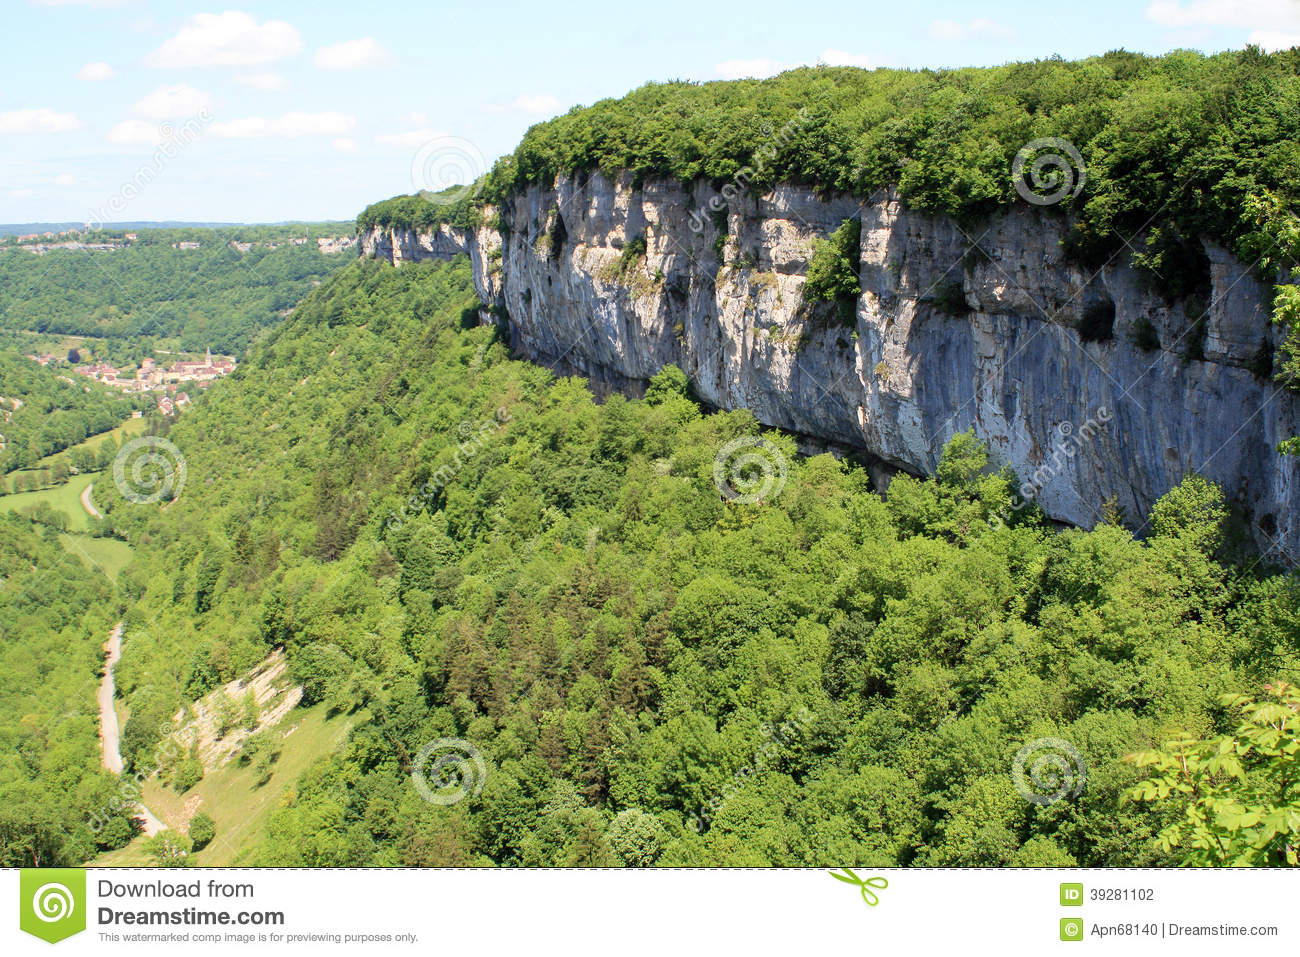 Baume-les-Messieurs in the Jura